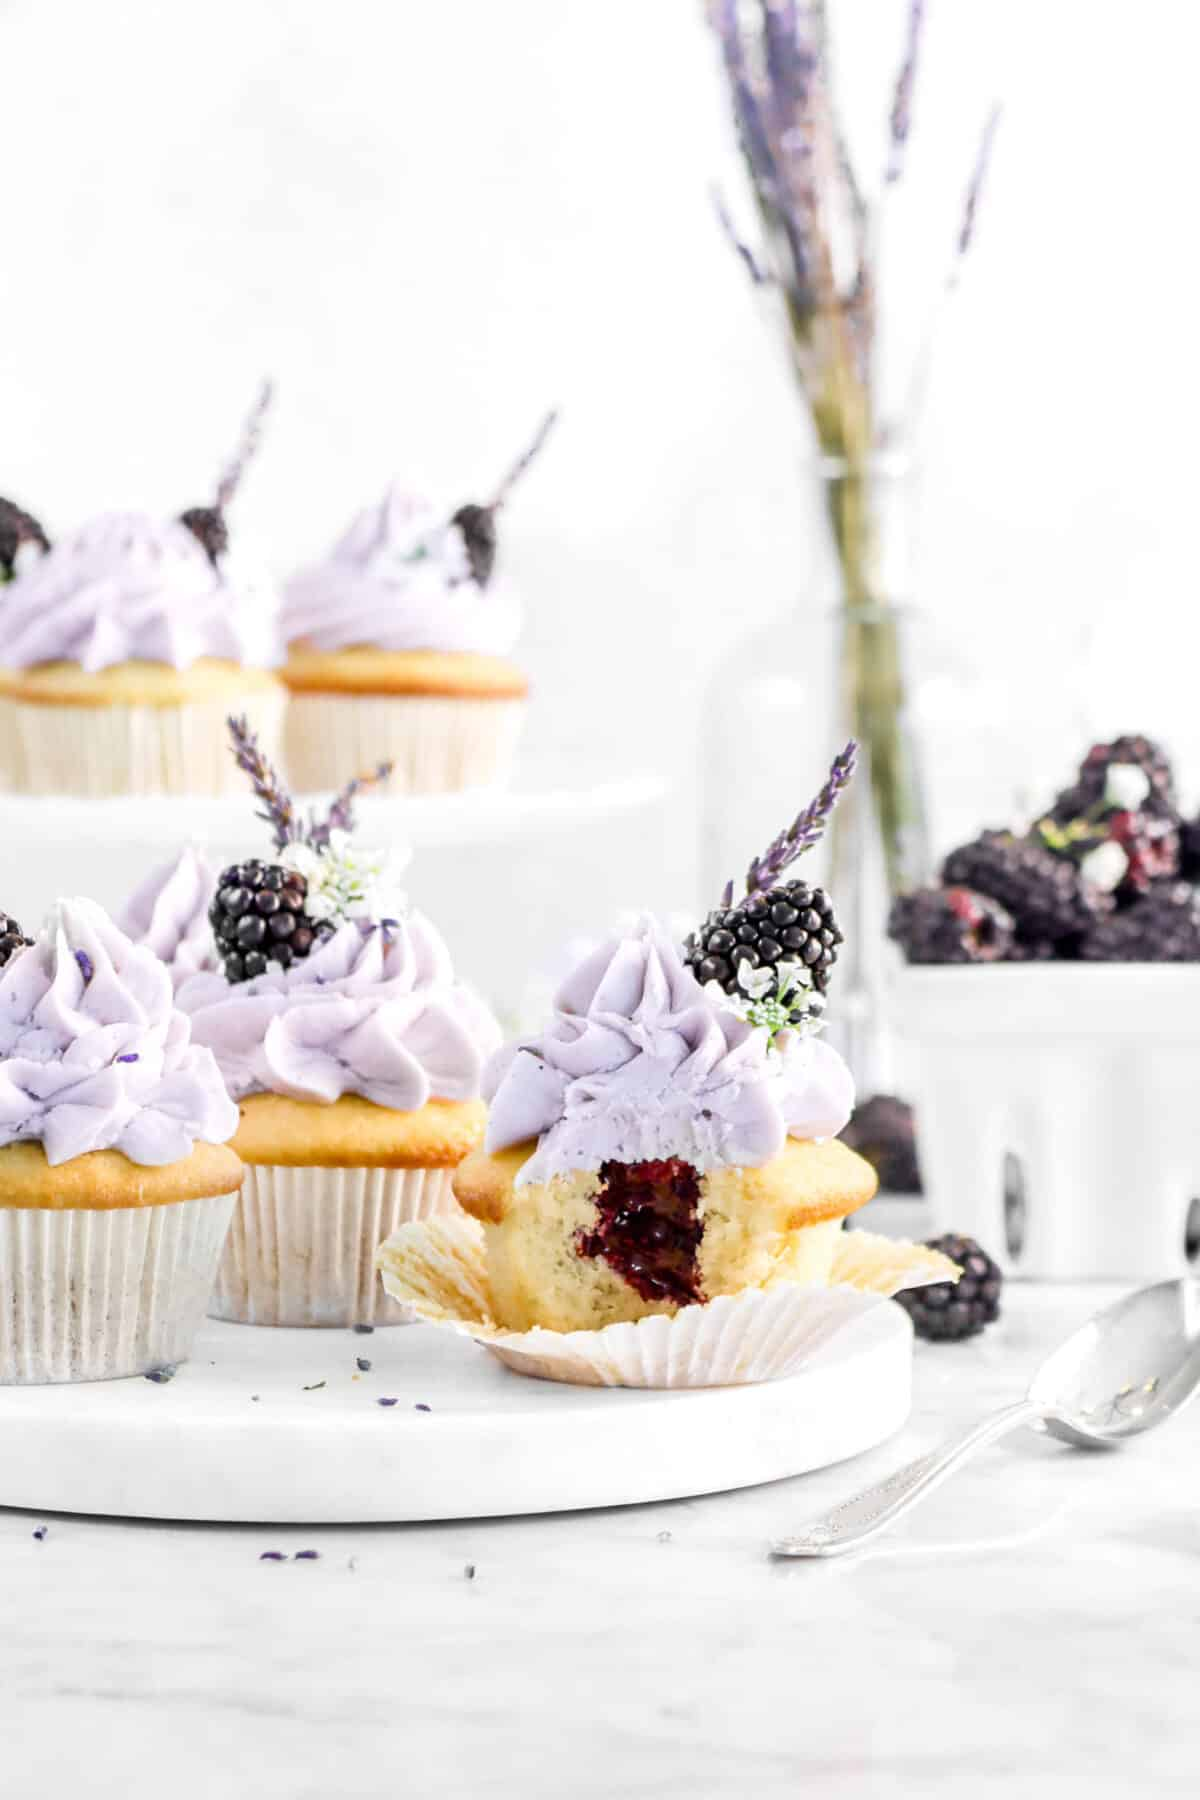 blackberry lavender cupcakes with a bite taken out of one with jam in the middle, blackberries around, and lavender